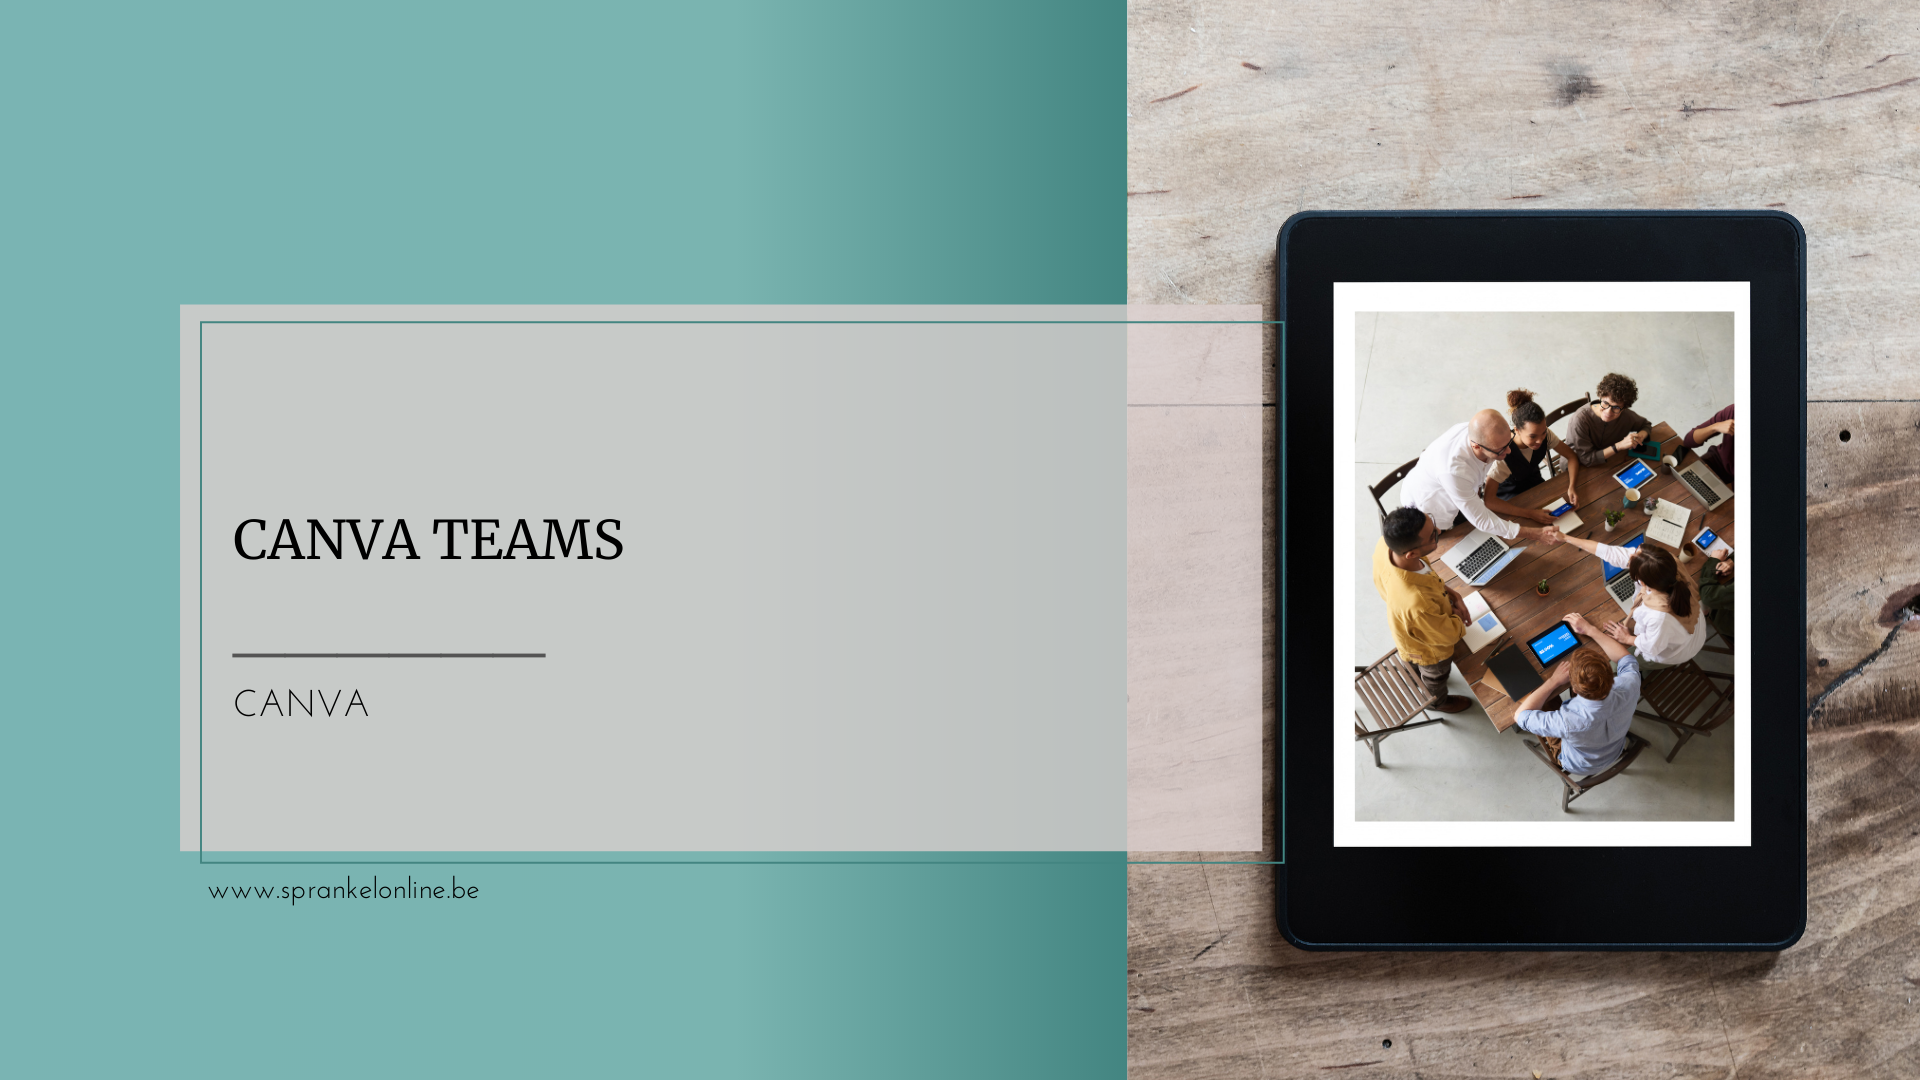 Canva Teams